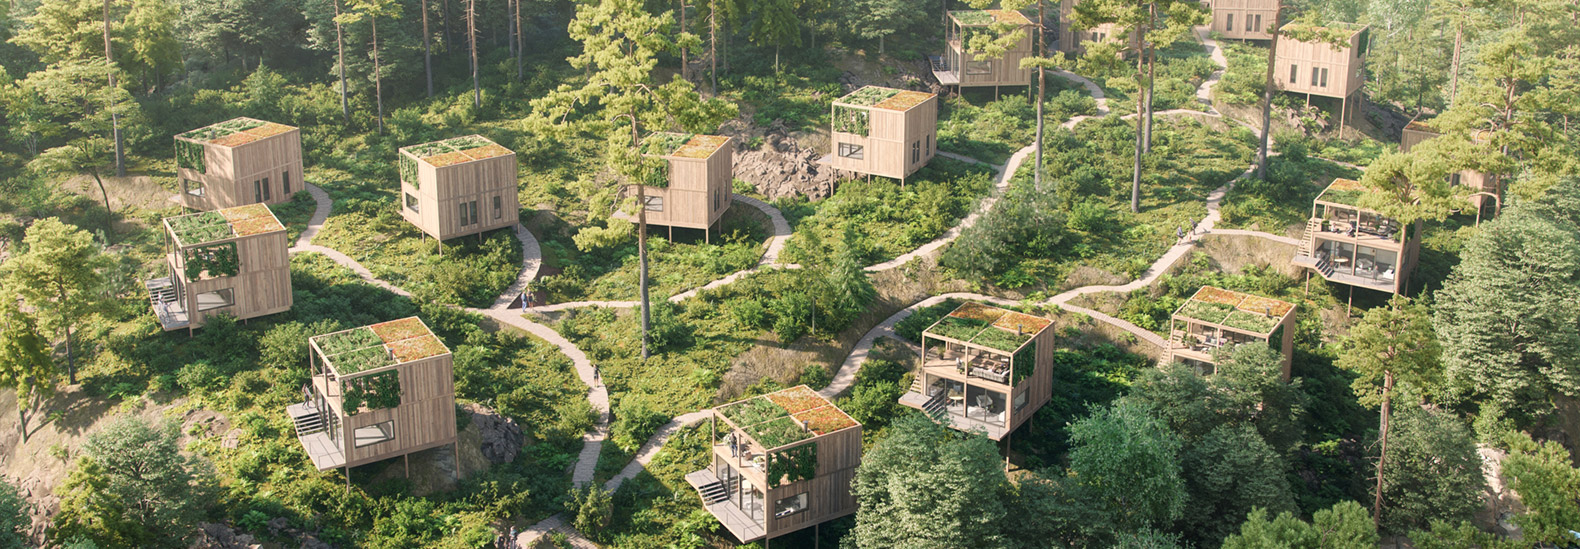 These elevated wooden cabins can only accessed via hiking trail